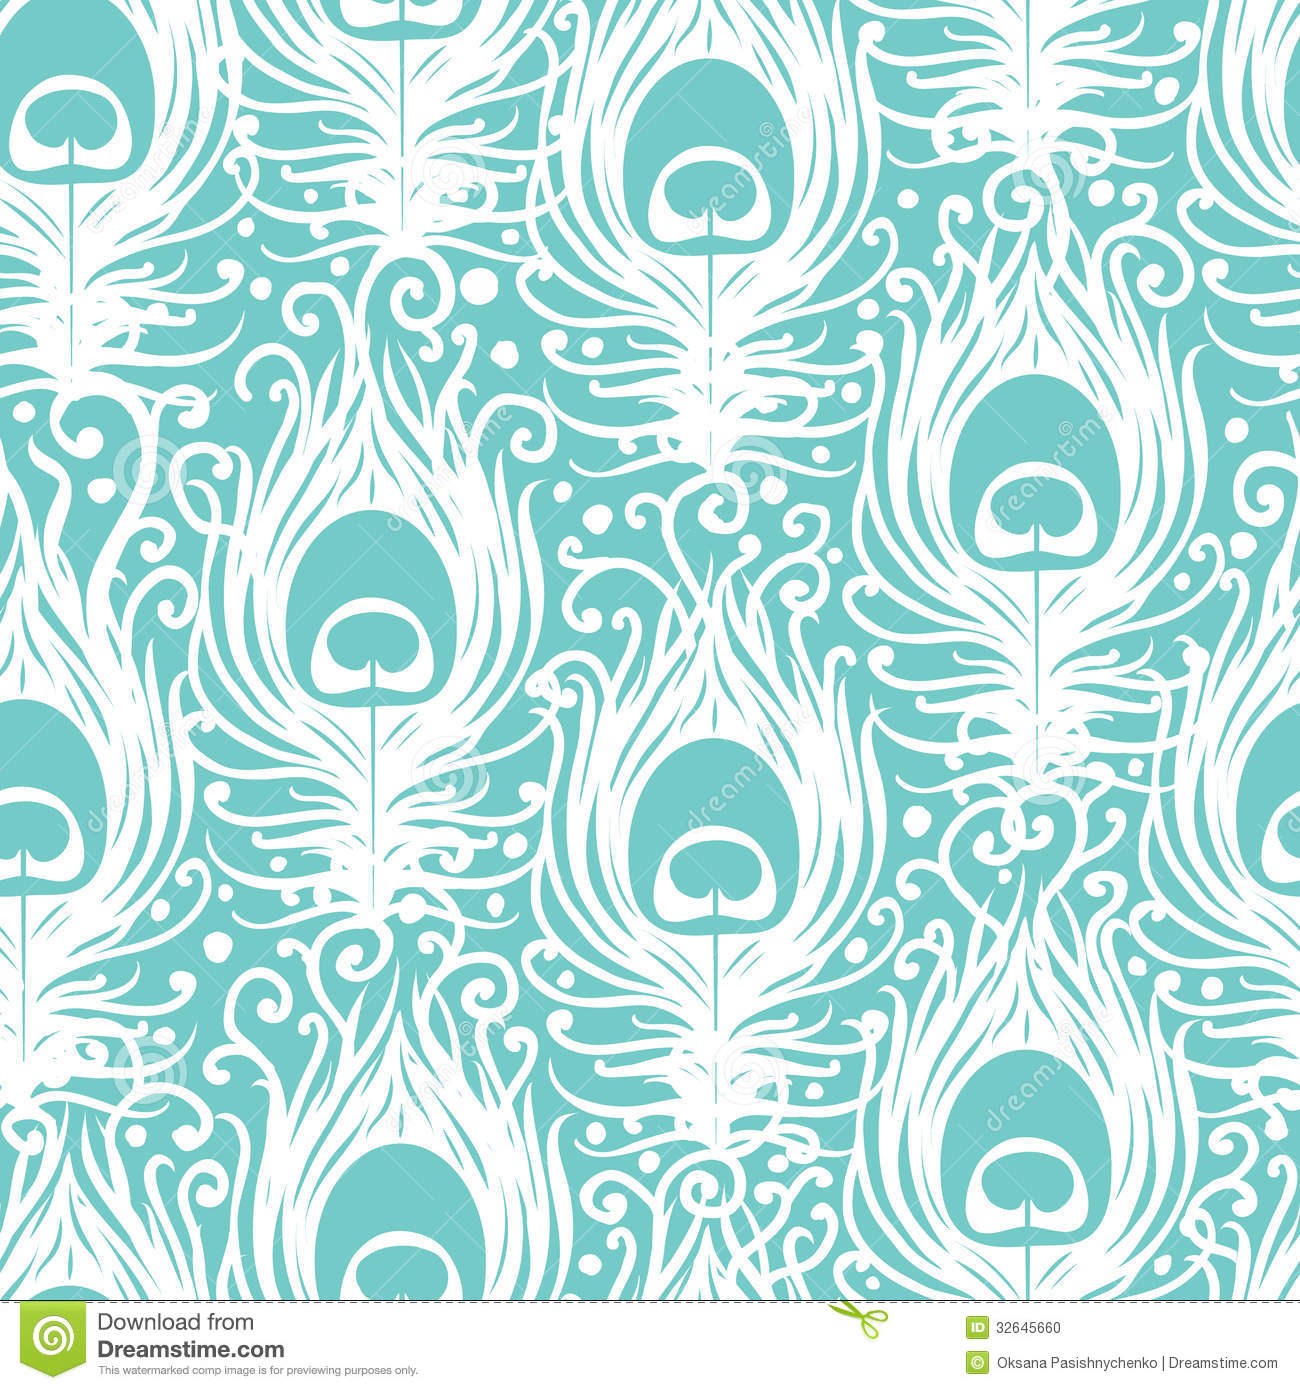 Animal Print Wallpaper Border Soft Peacock Feathers Vector Seamless Pattern Stock Vector